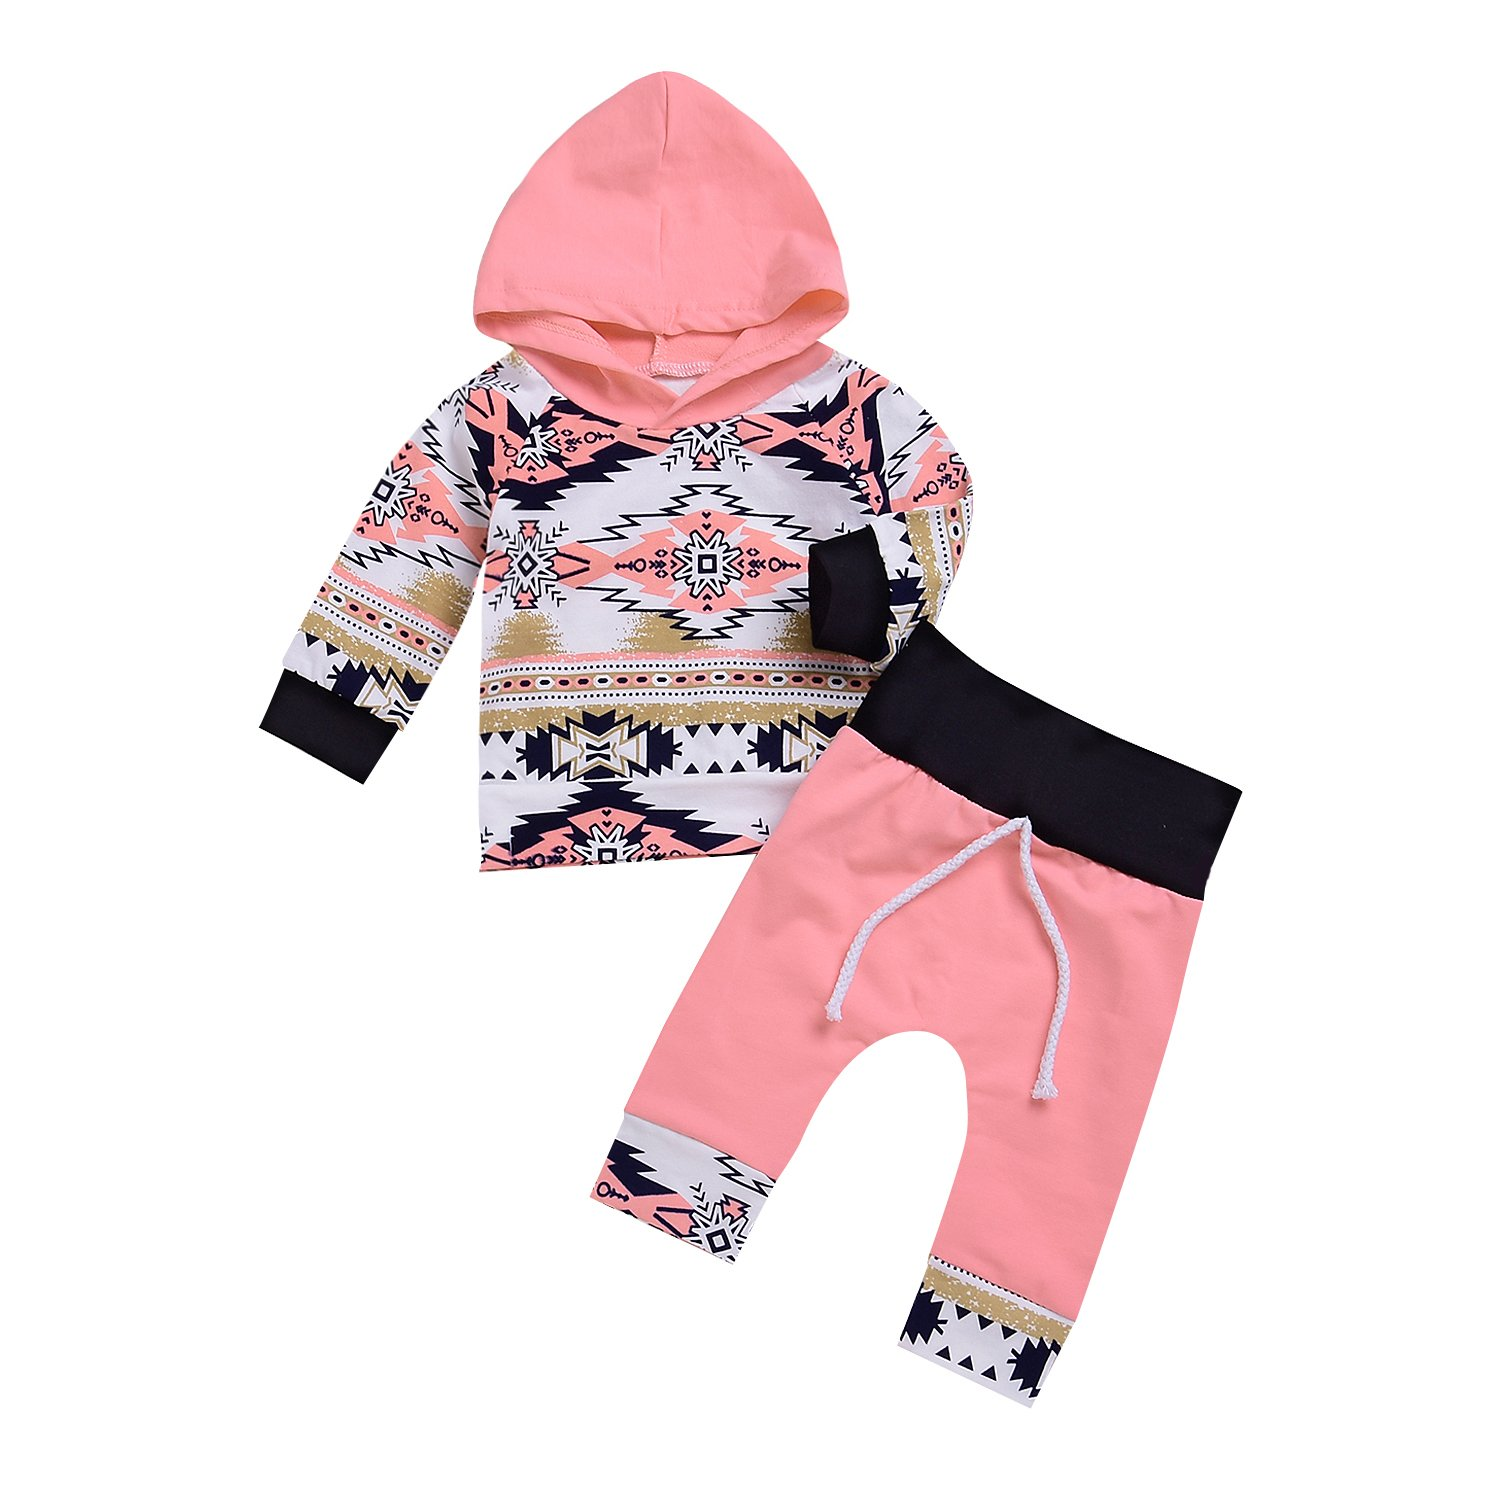 Aalizzwell 2Pcs Baby Girls' Fall Winter Long Sleeve Floral Geometric Print Hoodie + Pants Outfit Set